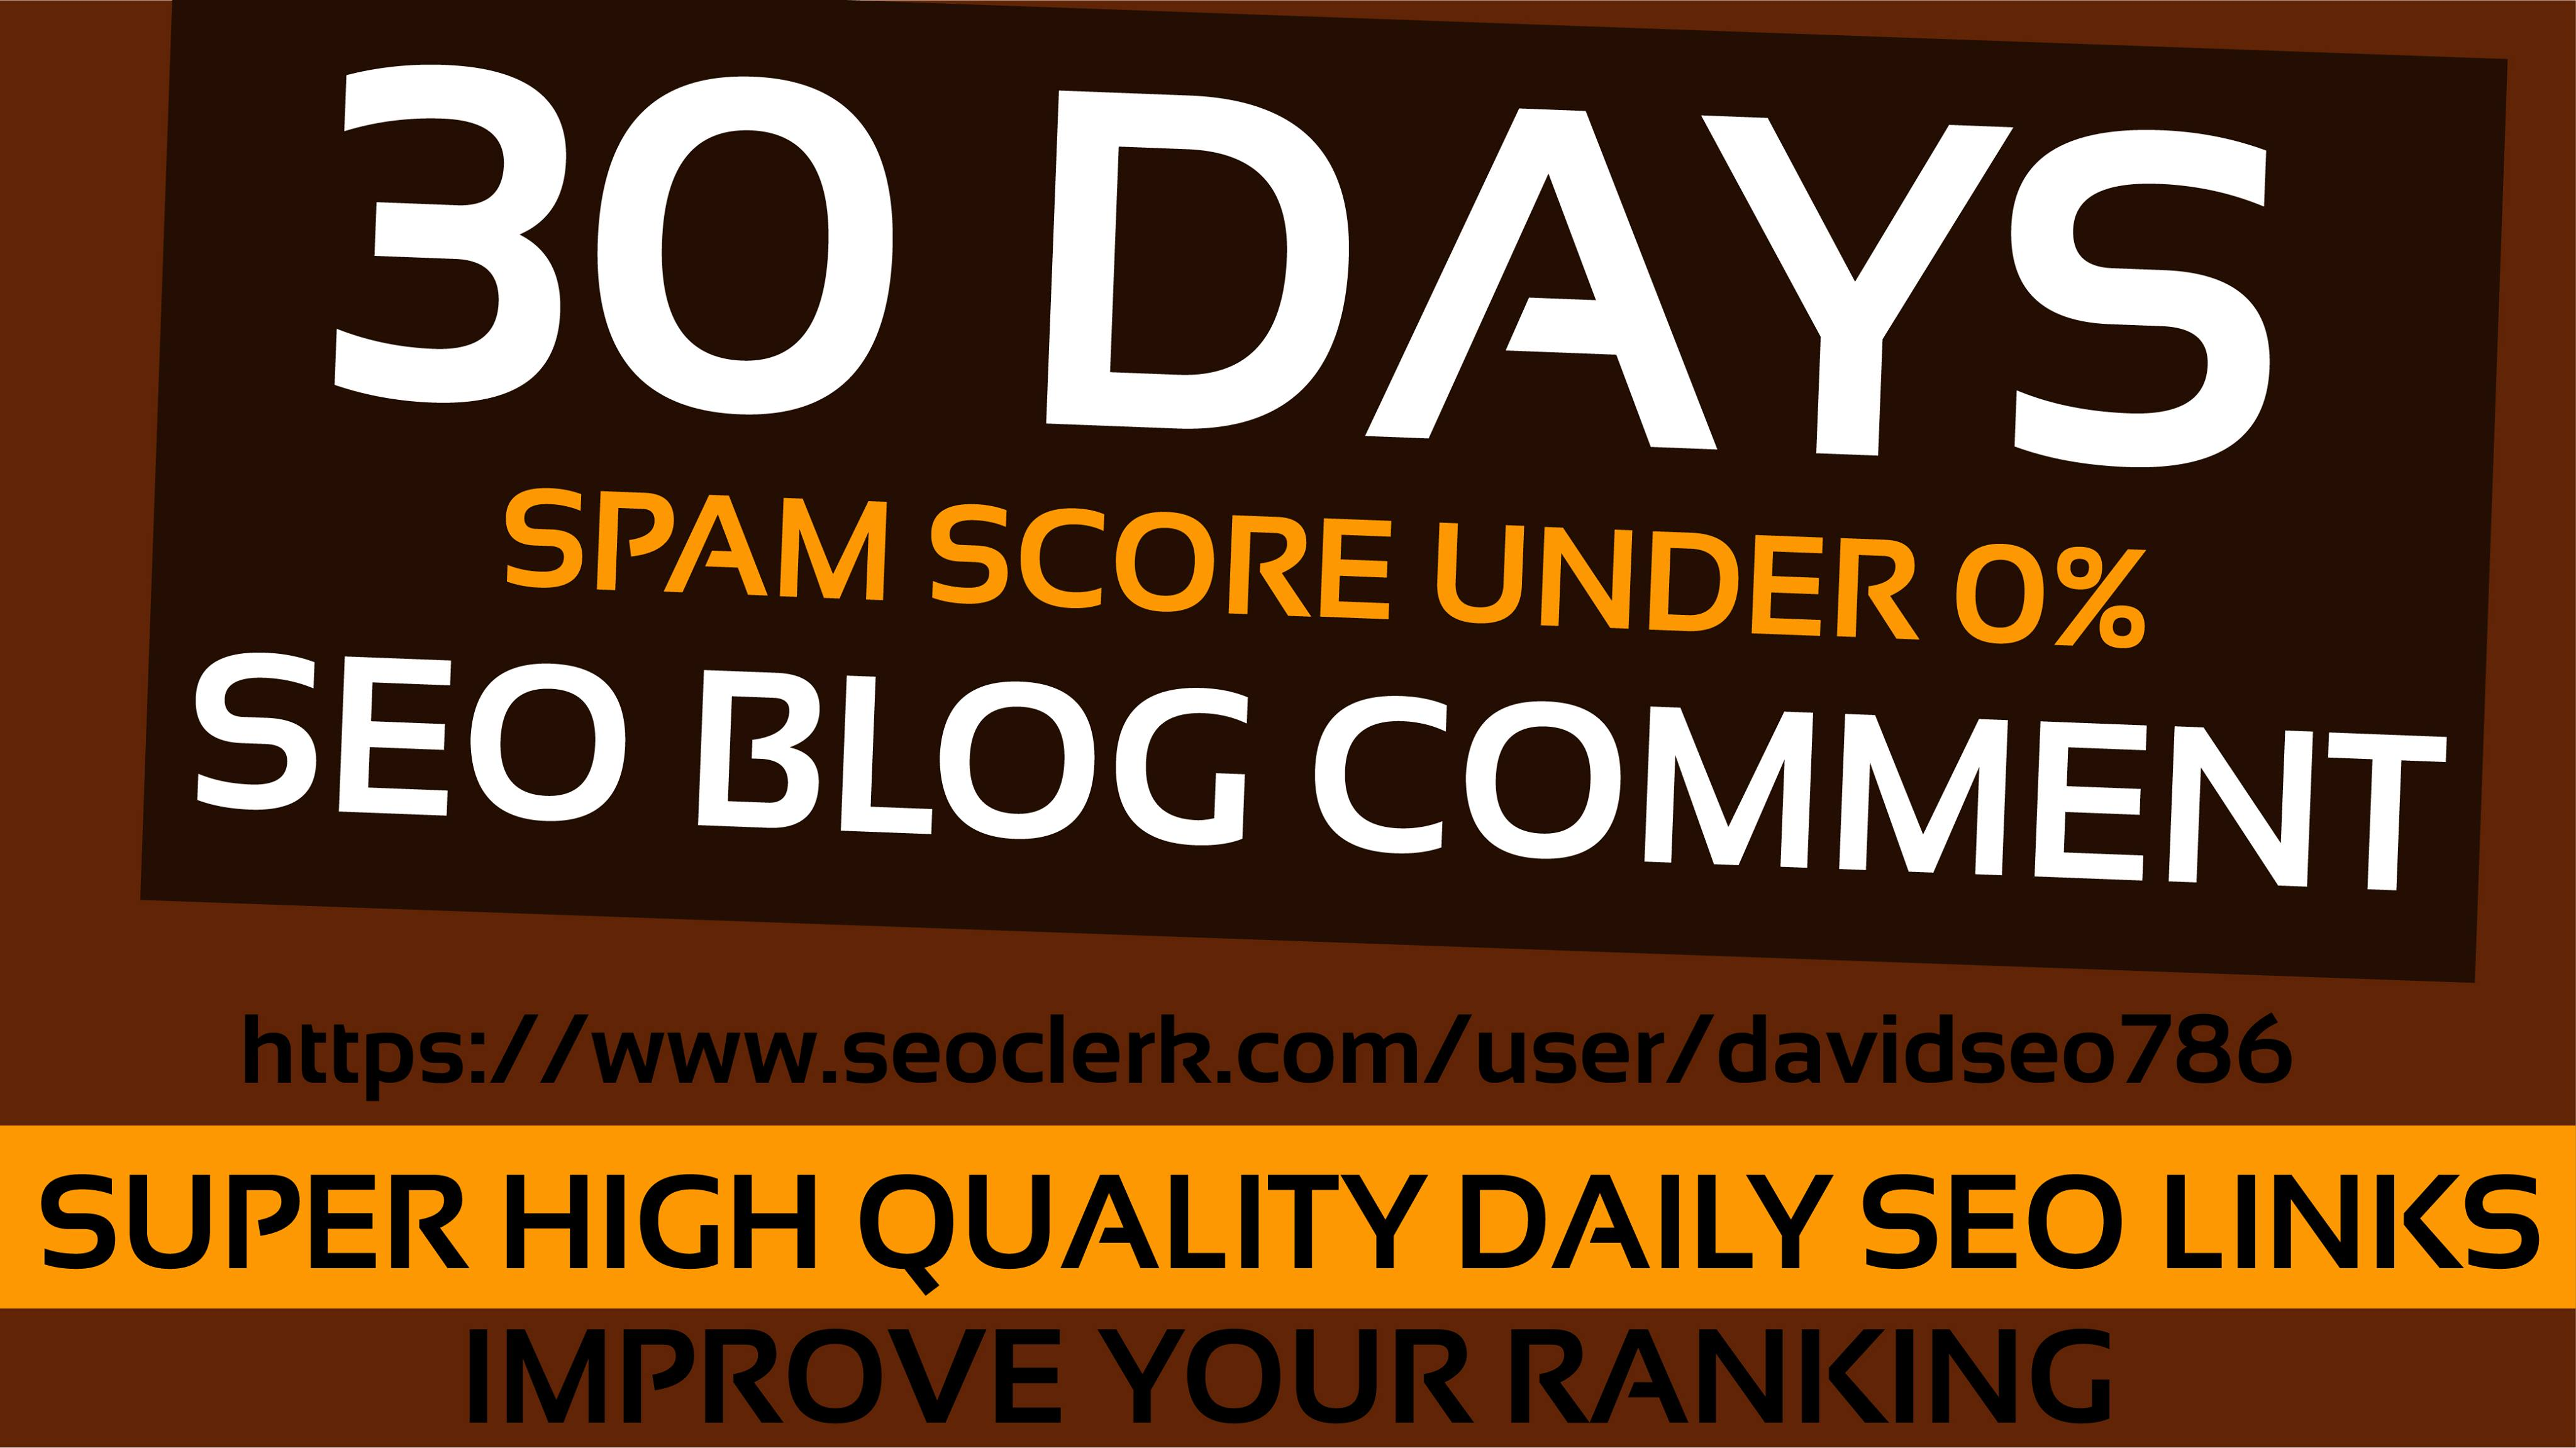 I will do daily 20 dripfeed dofollow blog comment on 30 days with high da pa